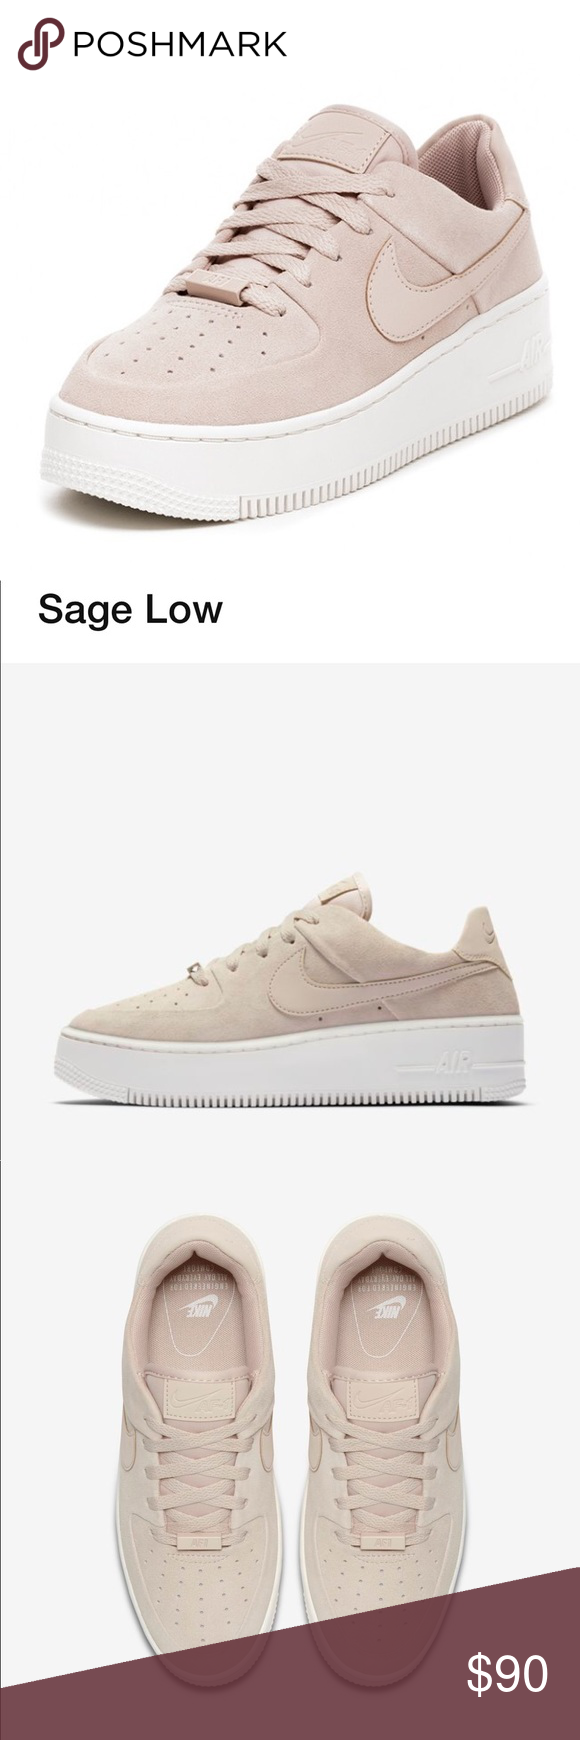 0d1566d1931 Nike Air Force 1 Sage Low only worn twice womens size 6